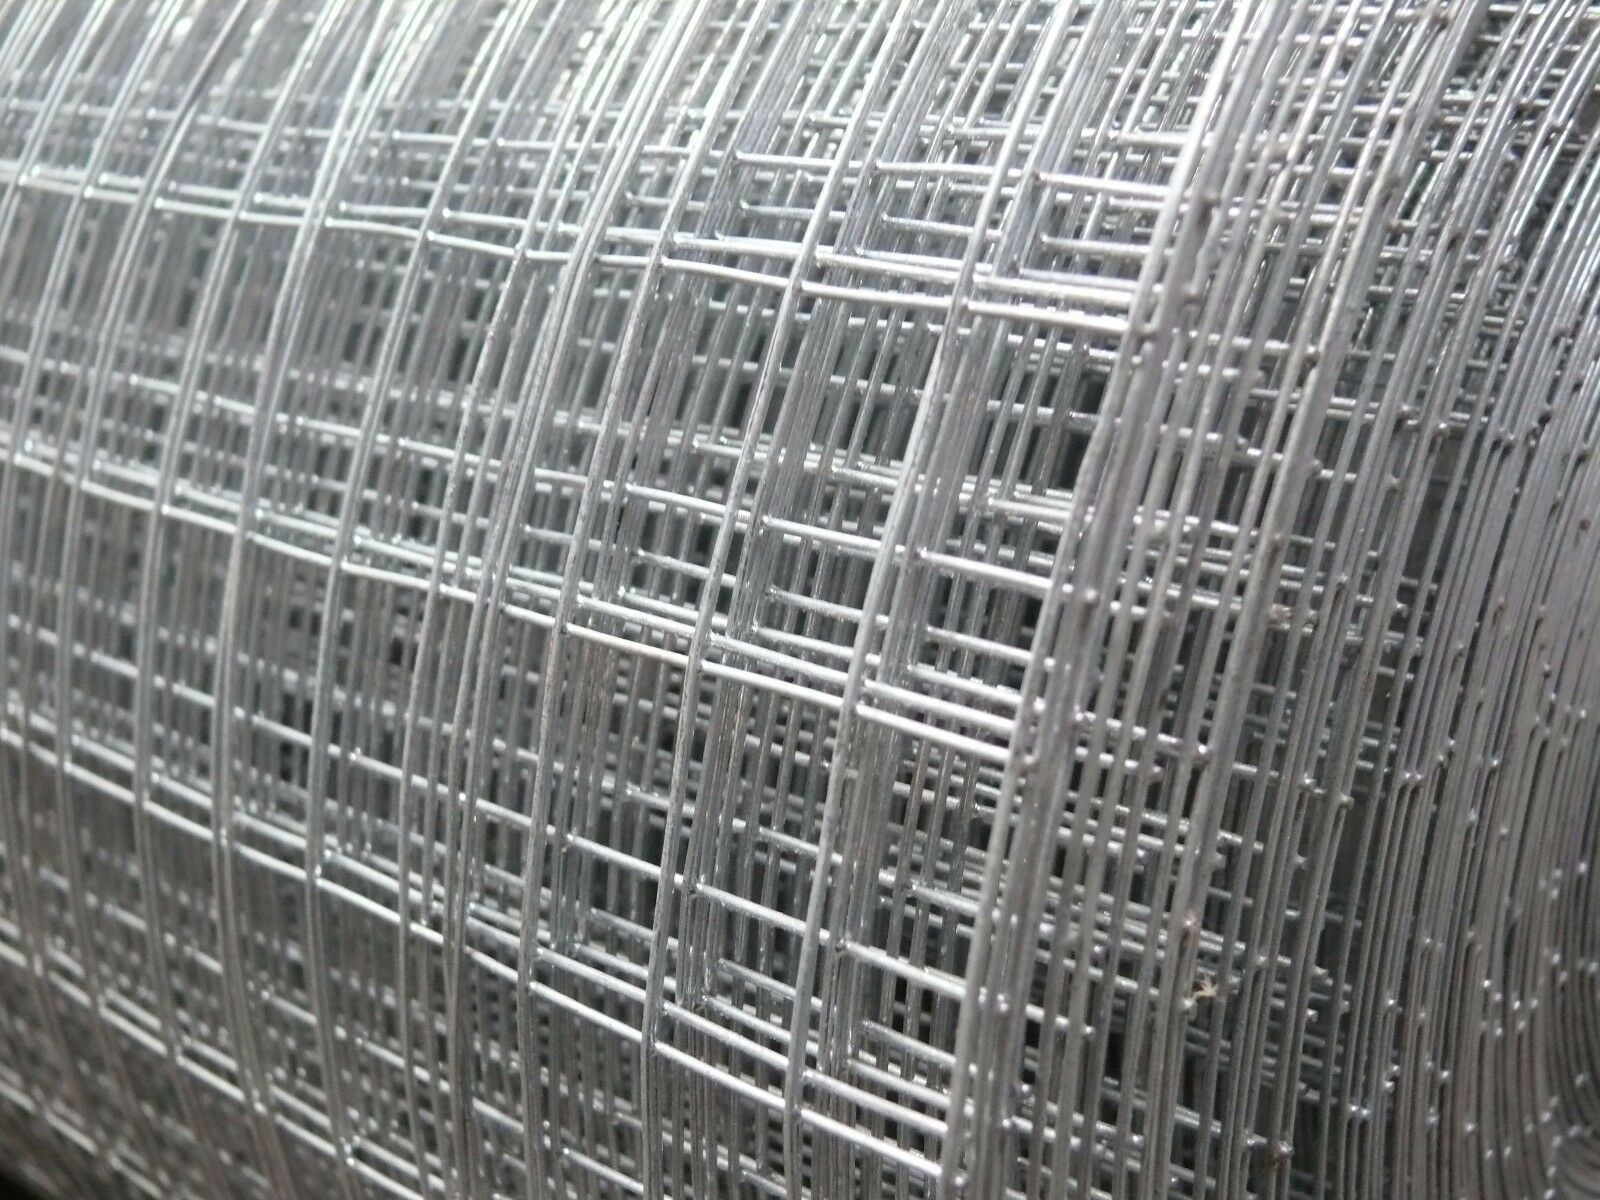 1 X1 Galvanized Welded Wire Fence Panels